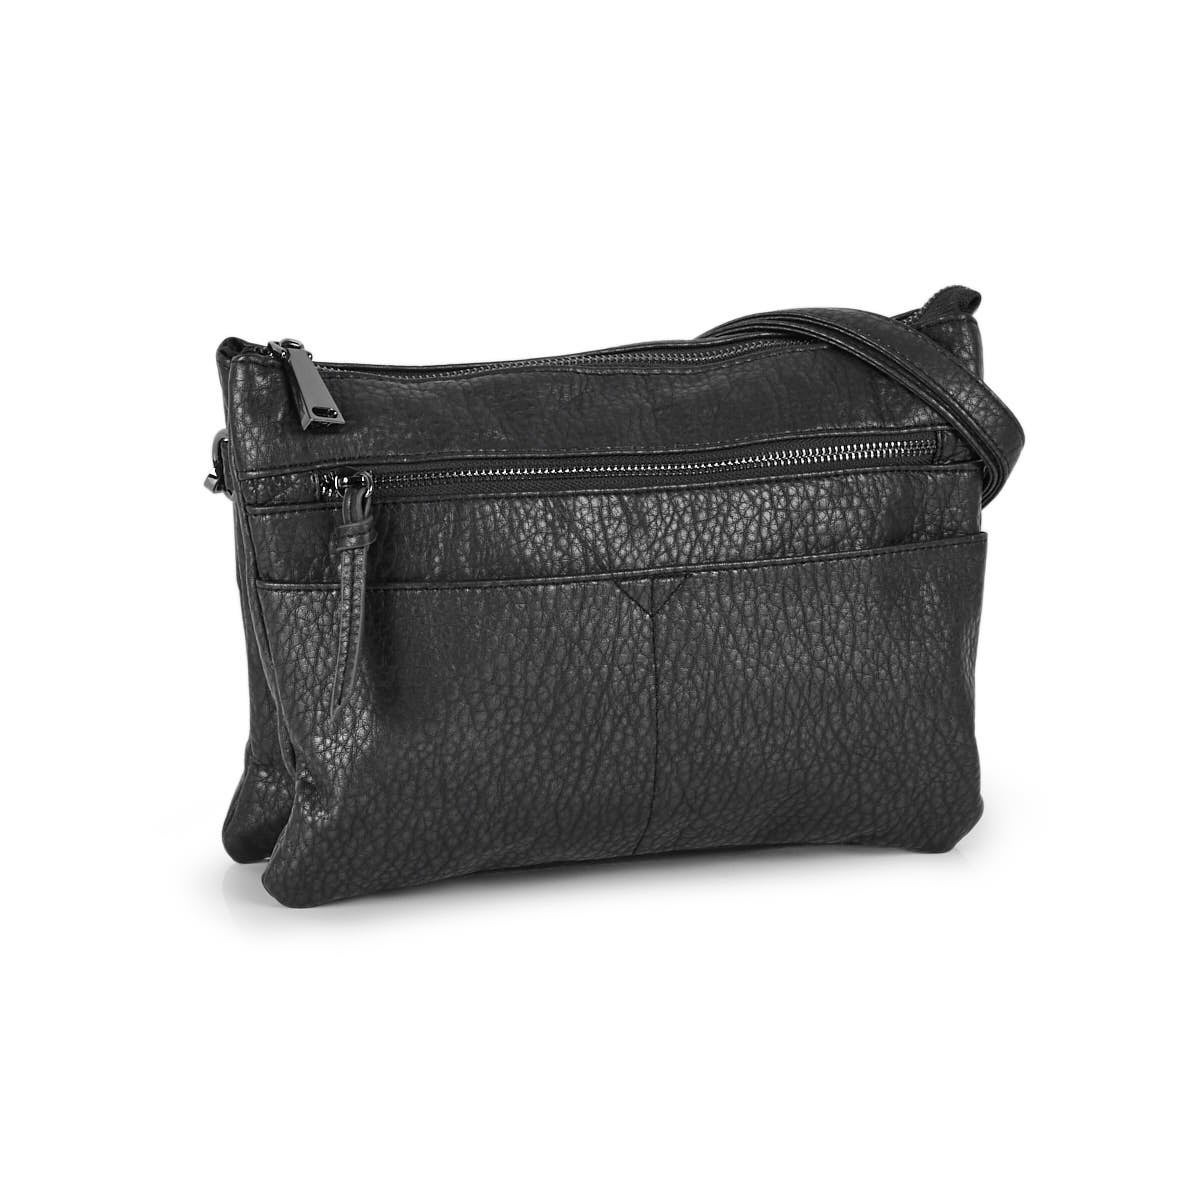 Lds Washed Vintage anth crossbody clutch